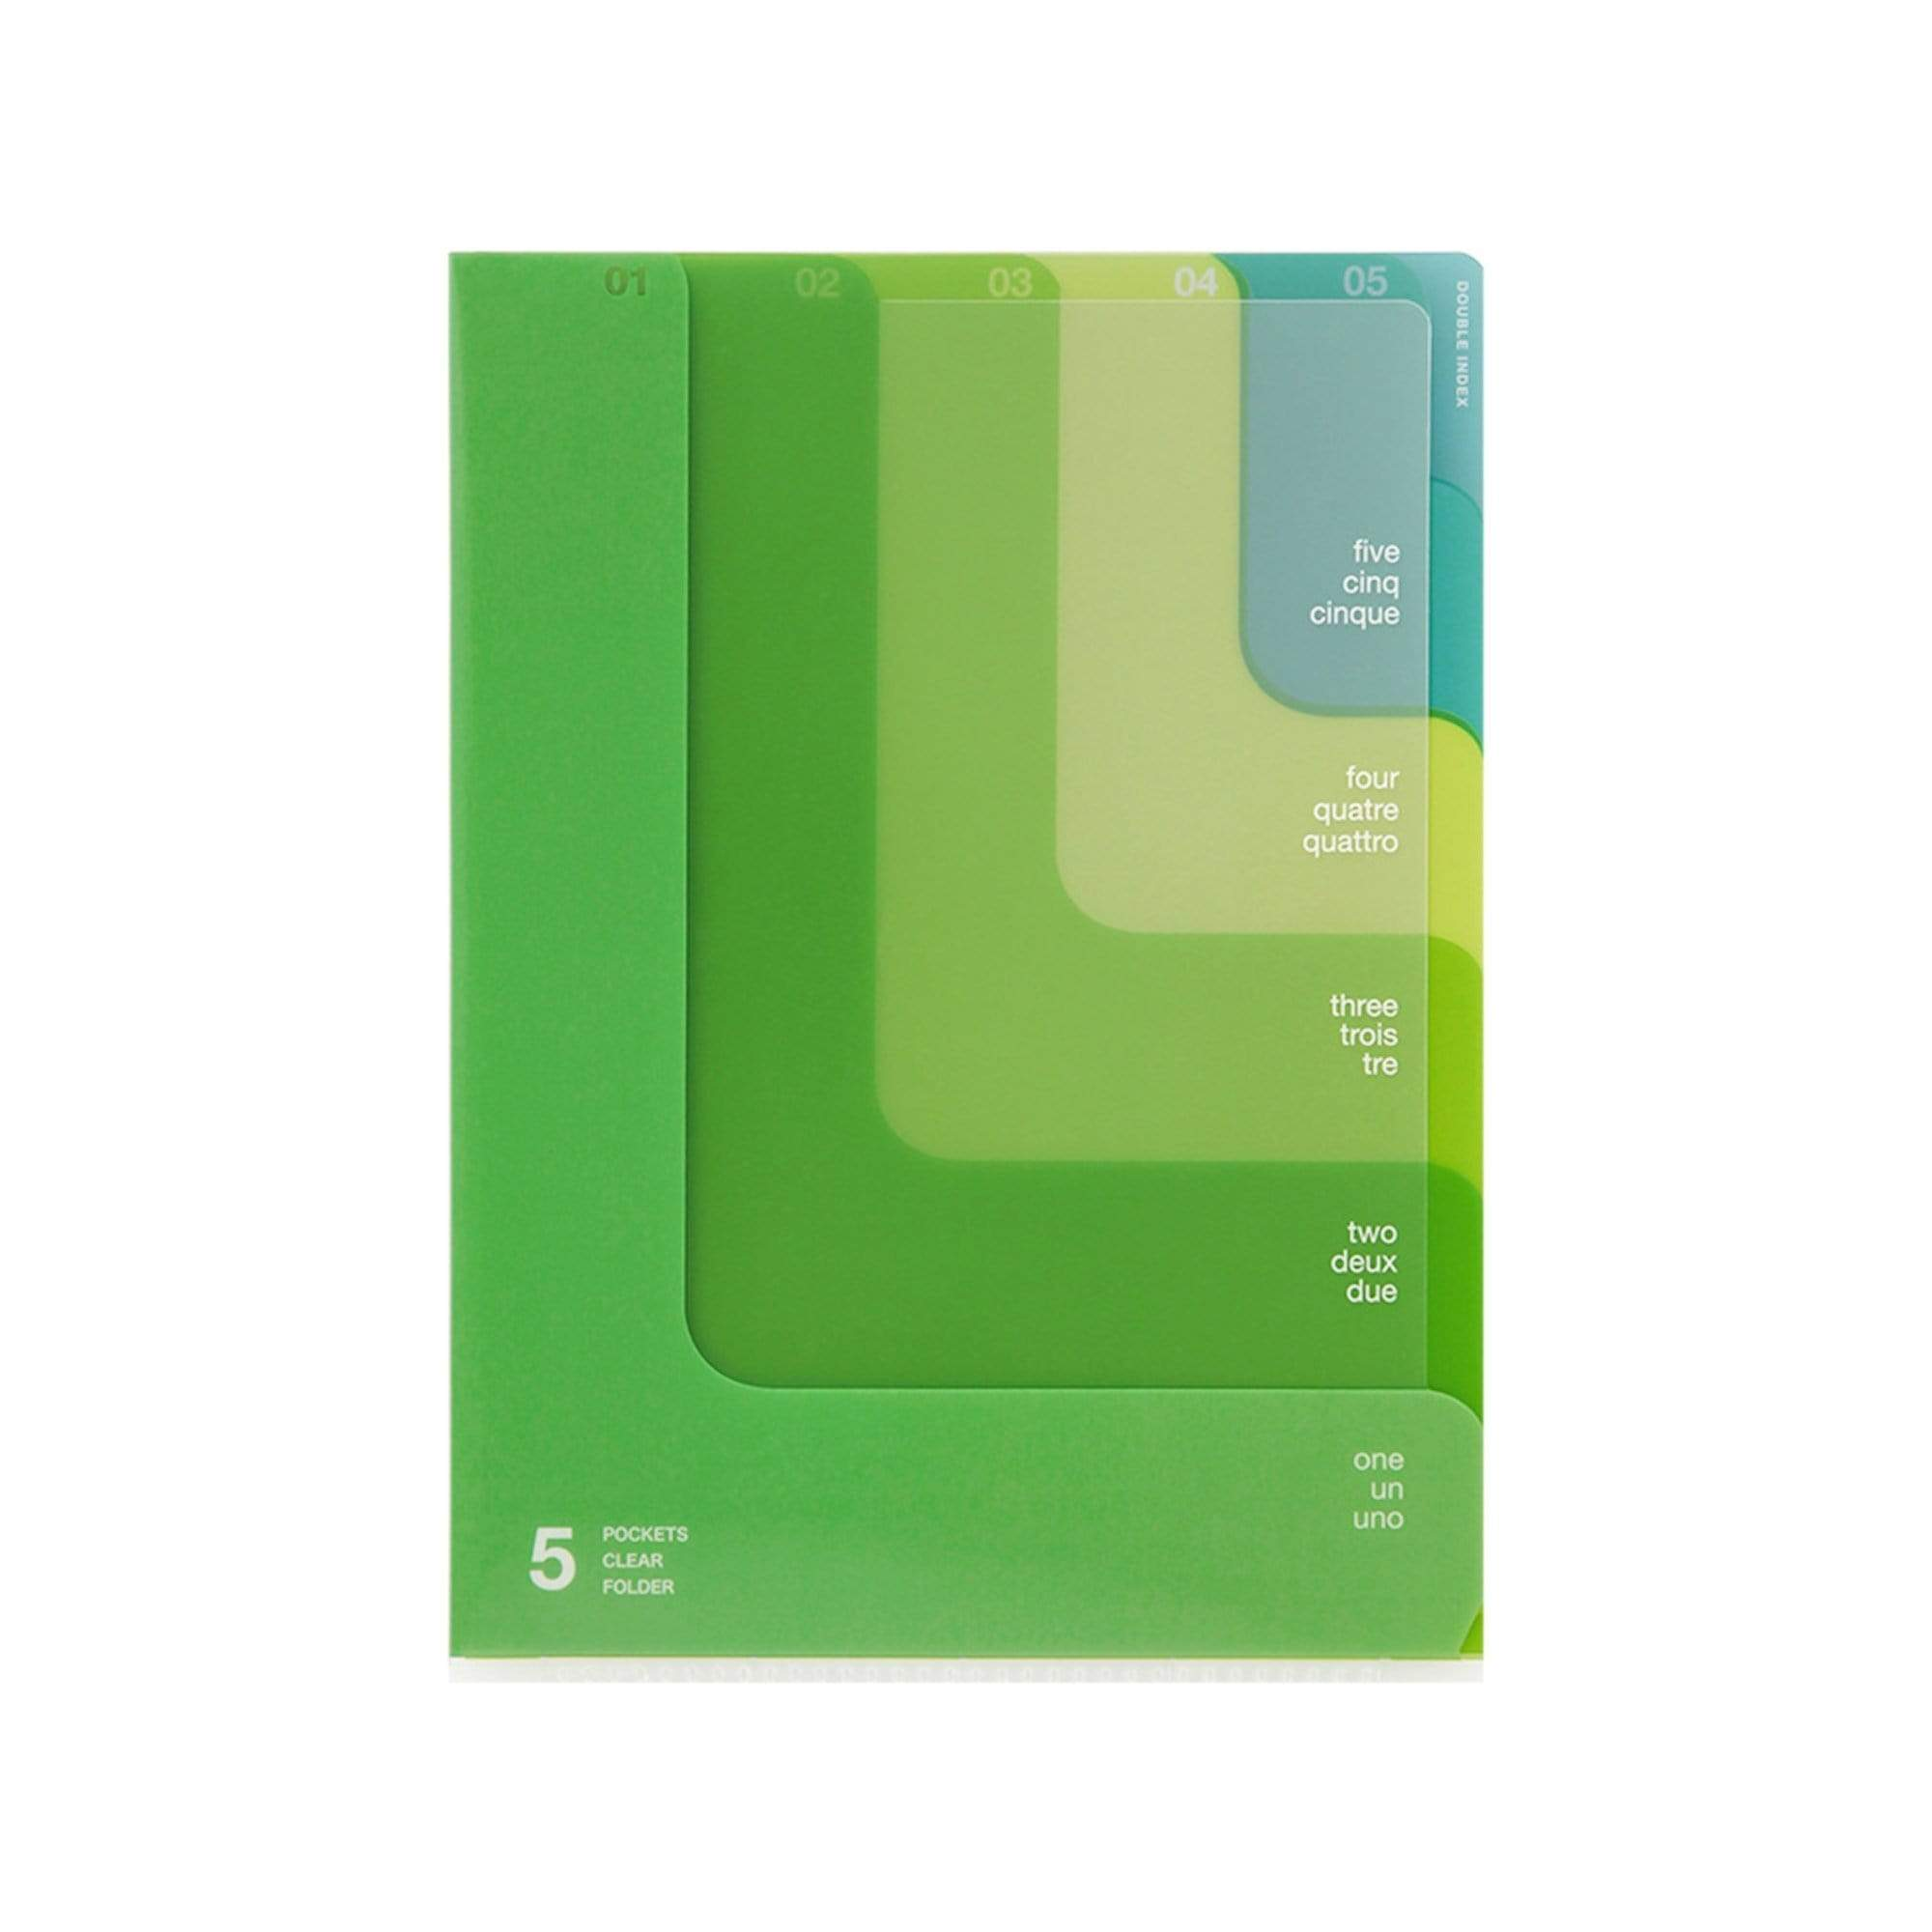 Midori MD A5 5 Pocket Clear Folder | 2-Way Blue Gradient Yellow & Green - The Stationery Life!